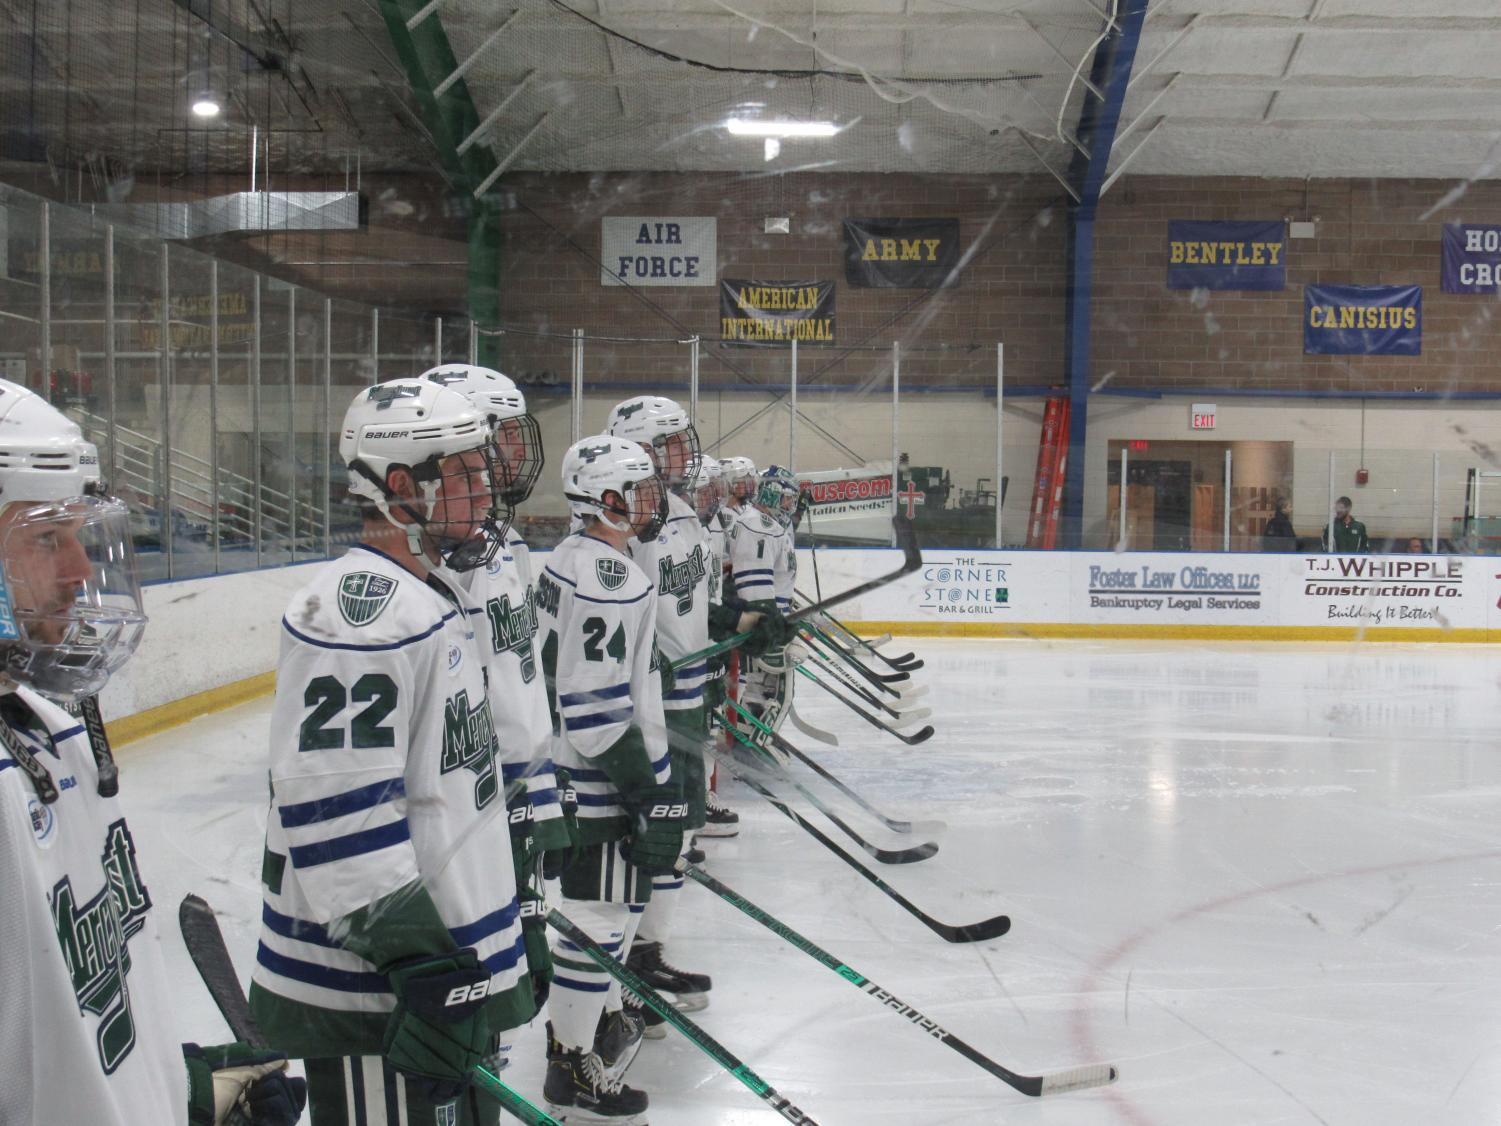 he Lakers line up at their end of the ice before the start of the game against Army West Point.